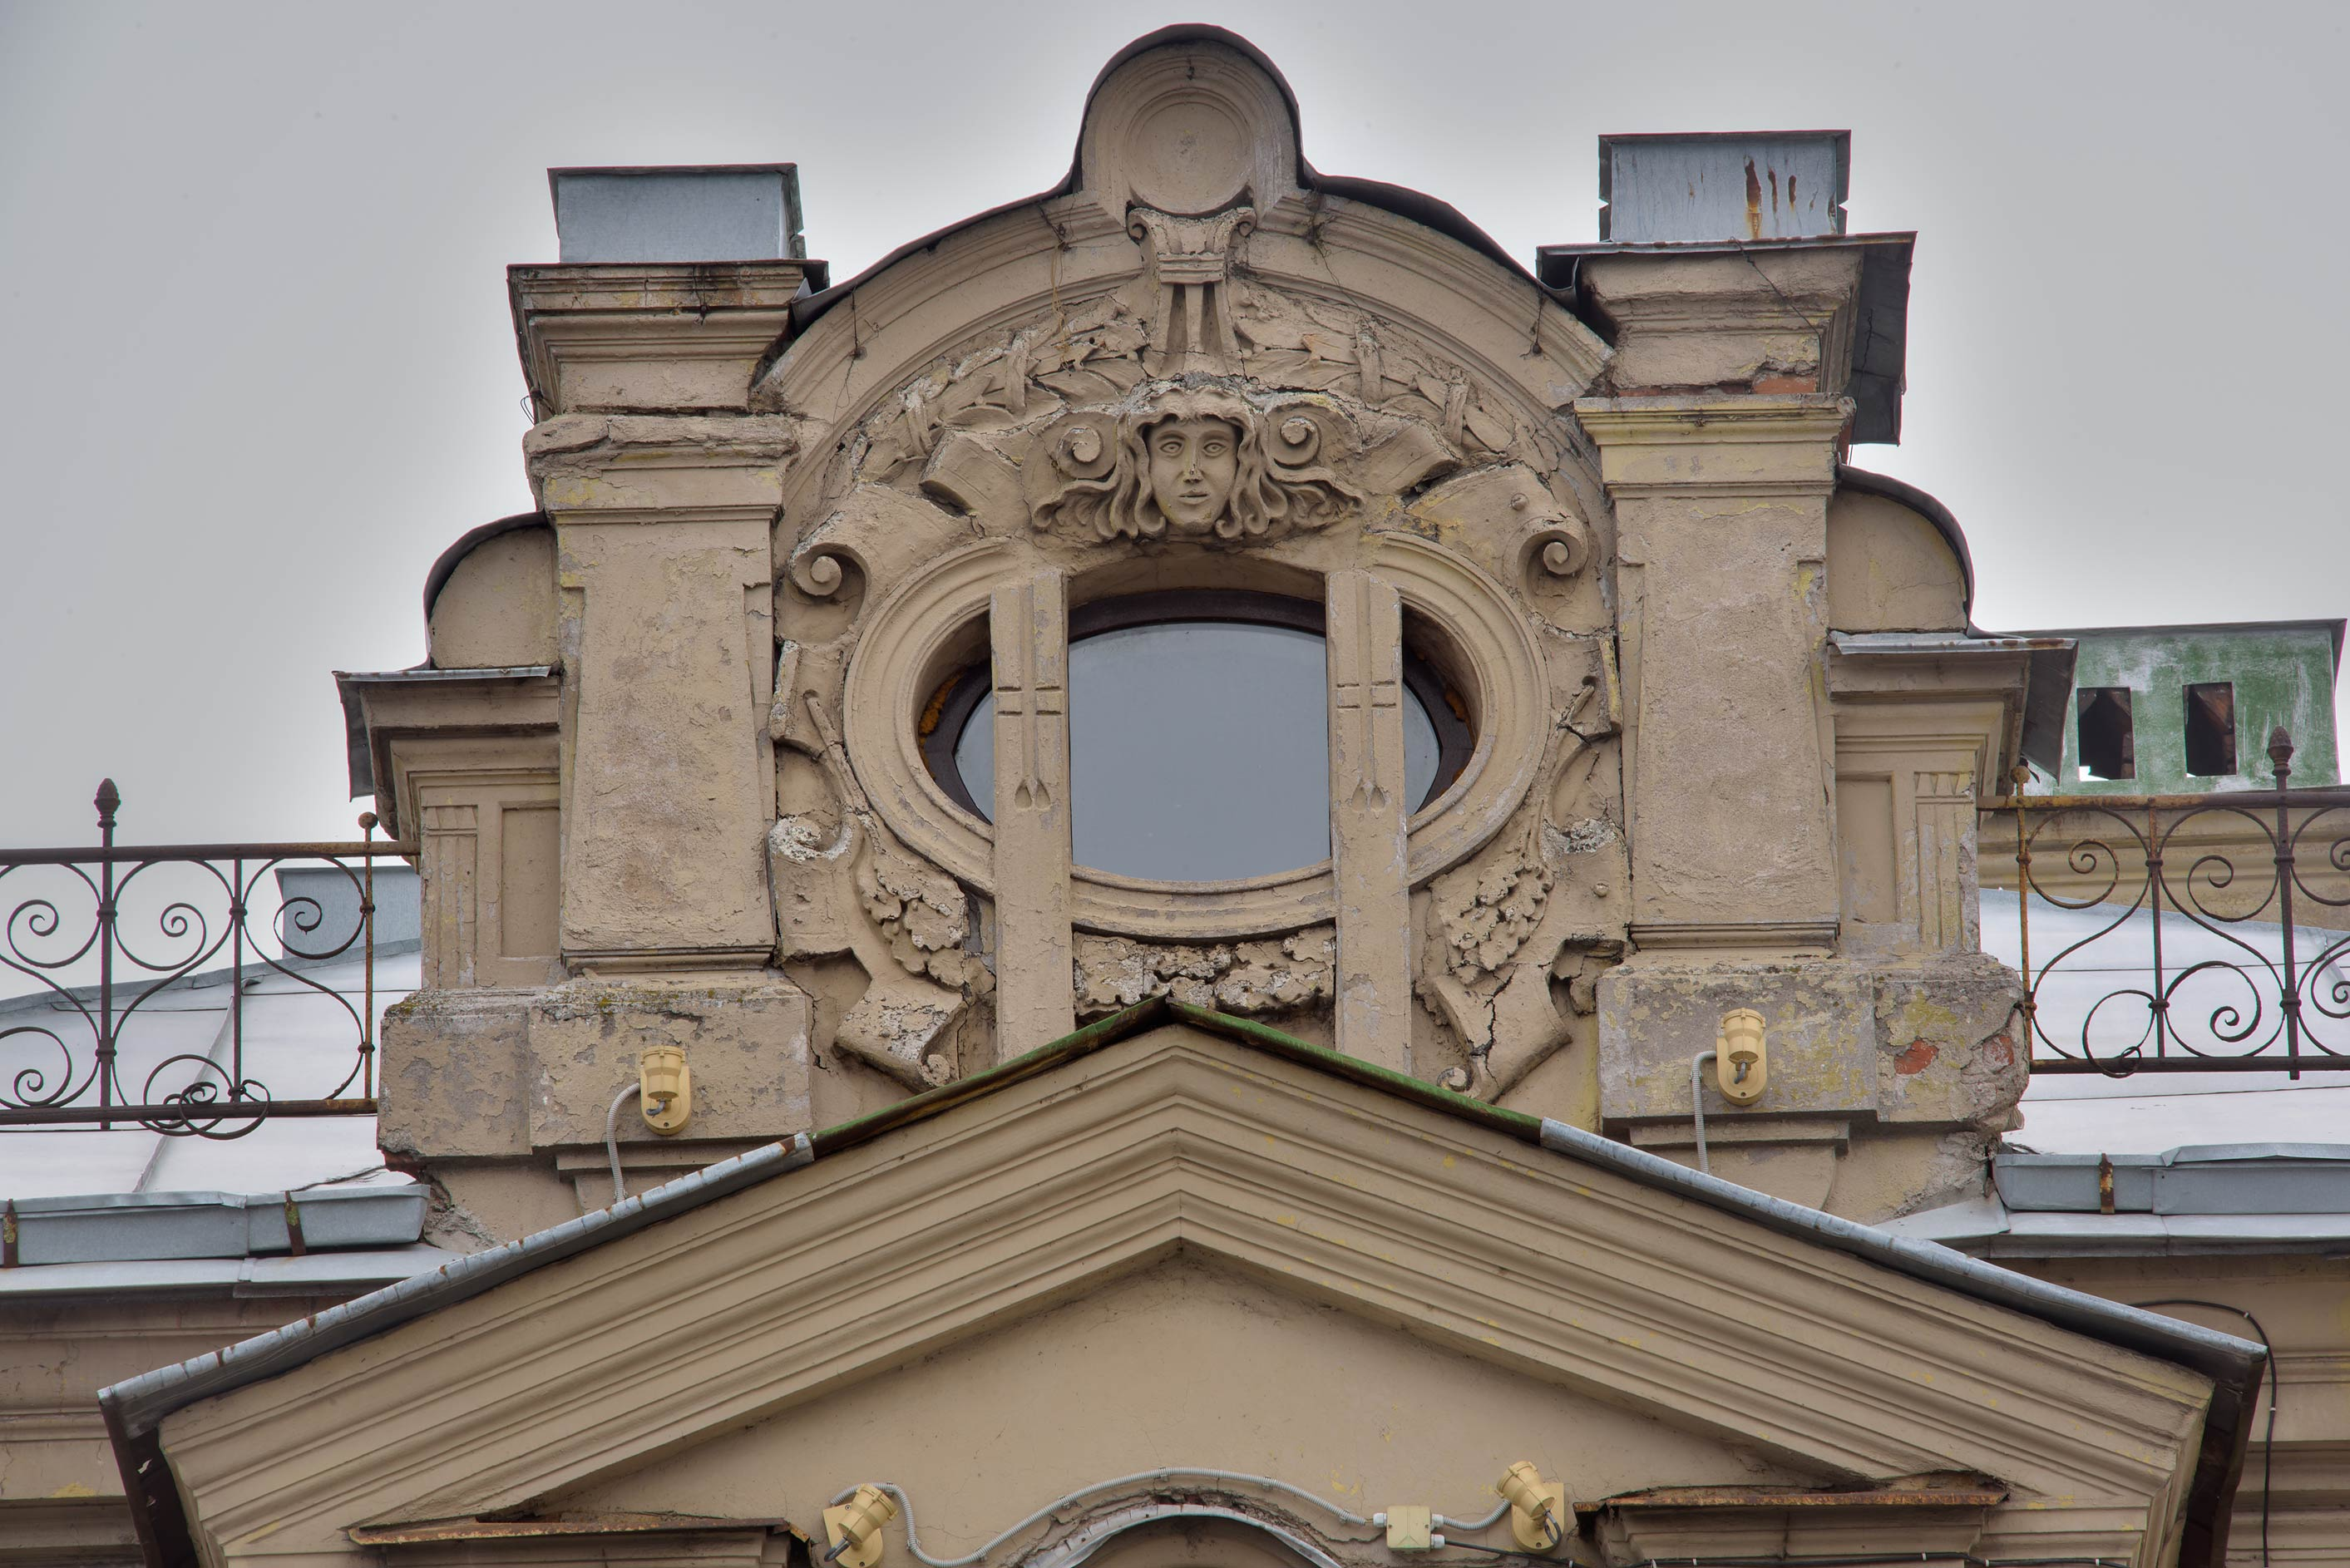 Roof decoration of N. F. Krupennikov Mansion on...Embankment. St.Petersburg, Russia